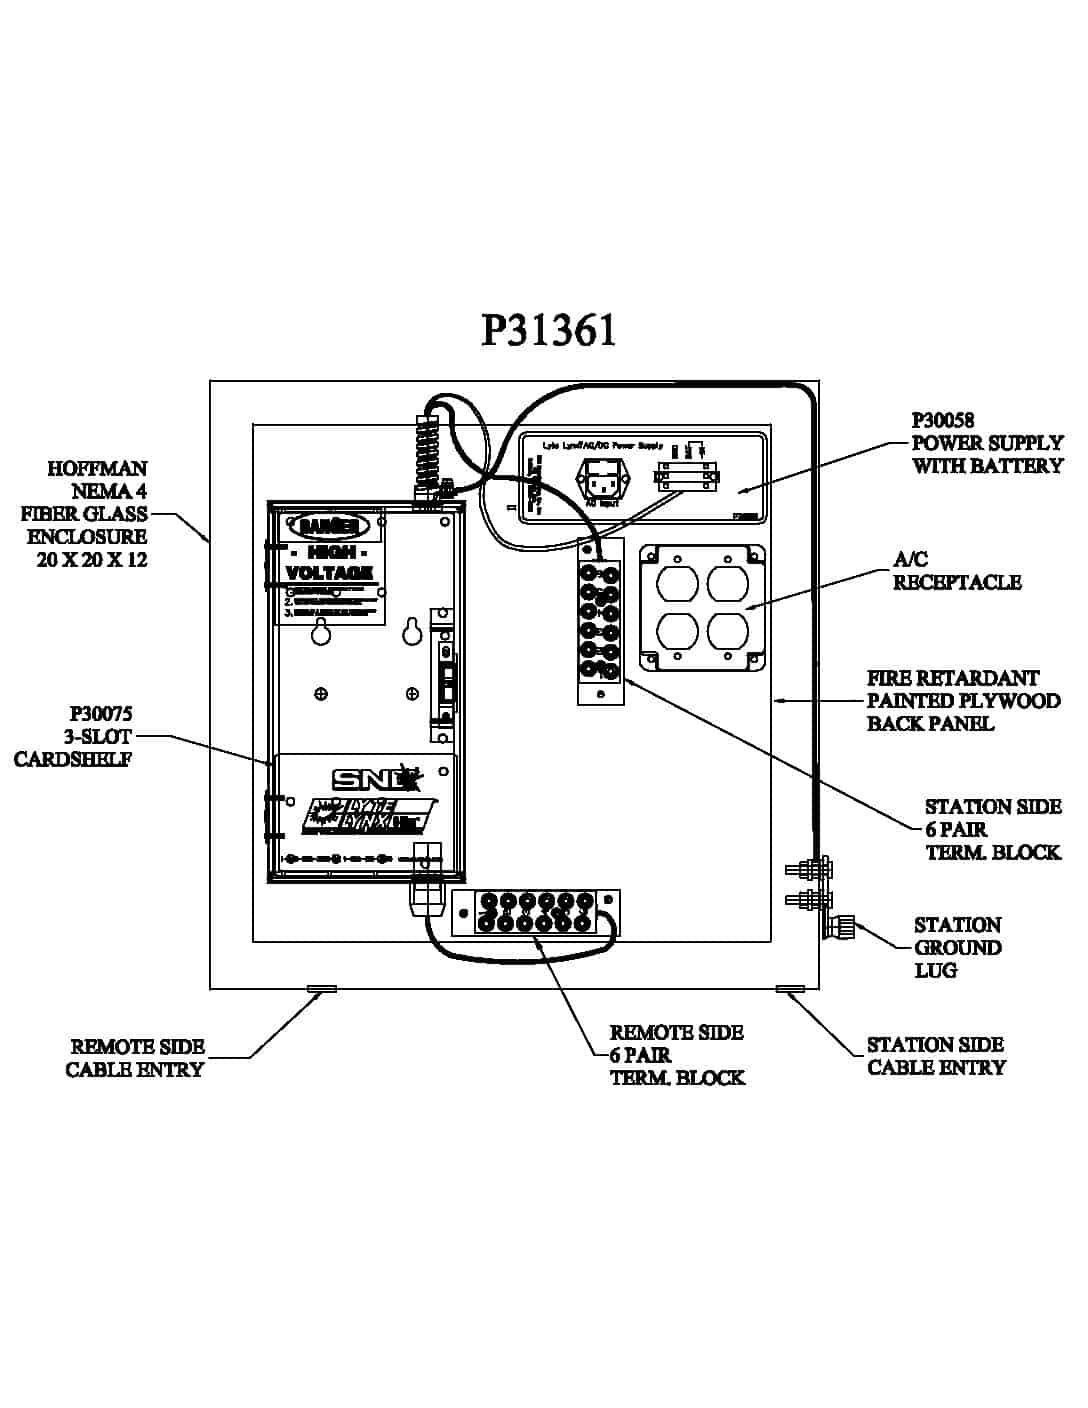 P31361 Turnkey Protection Packages – 3 slot PDF thumbnail